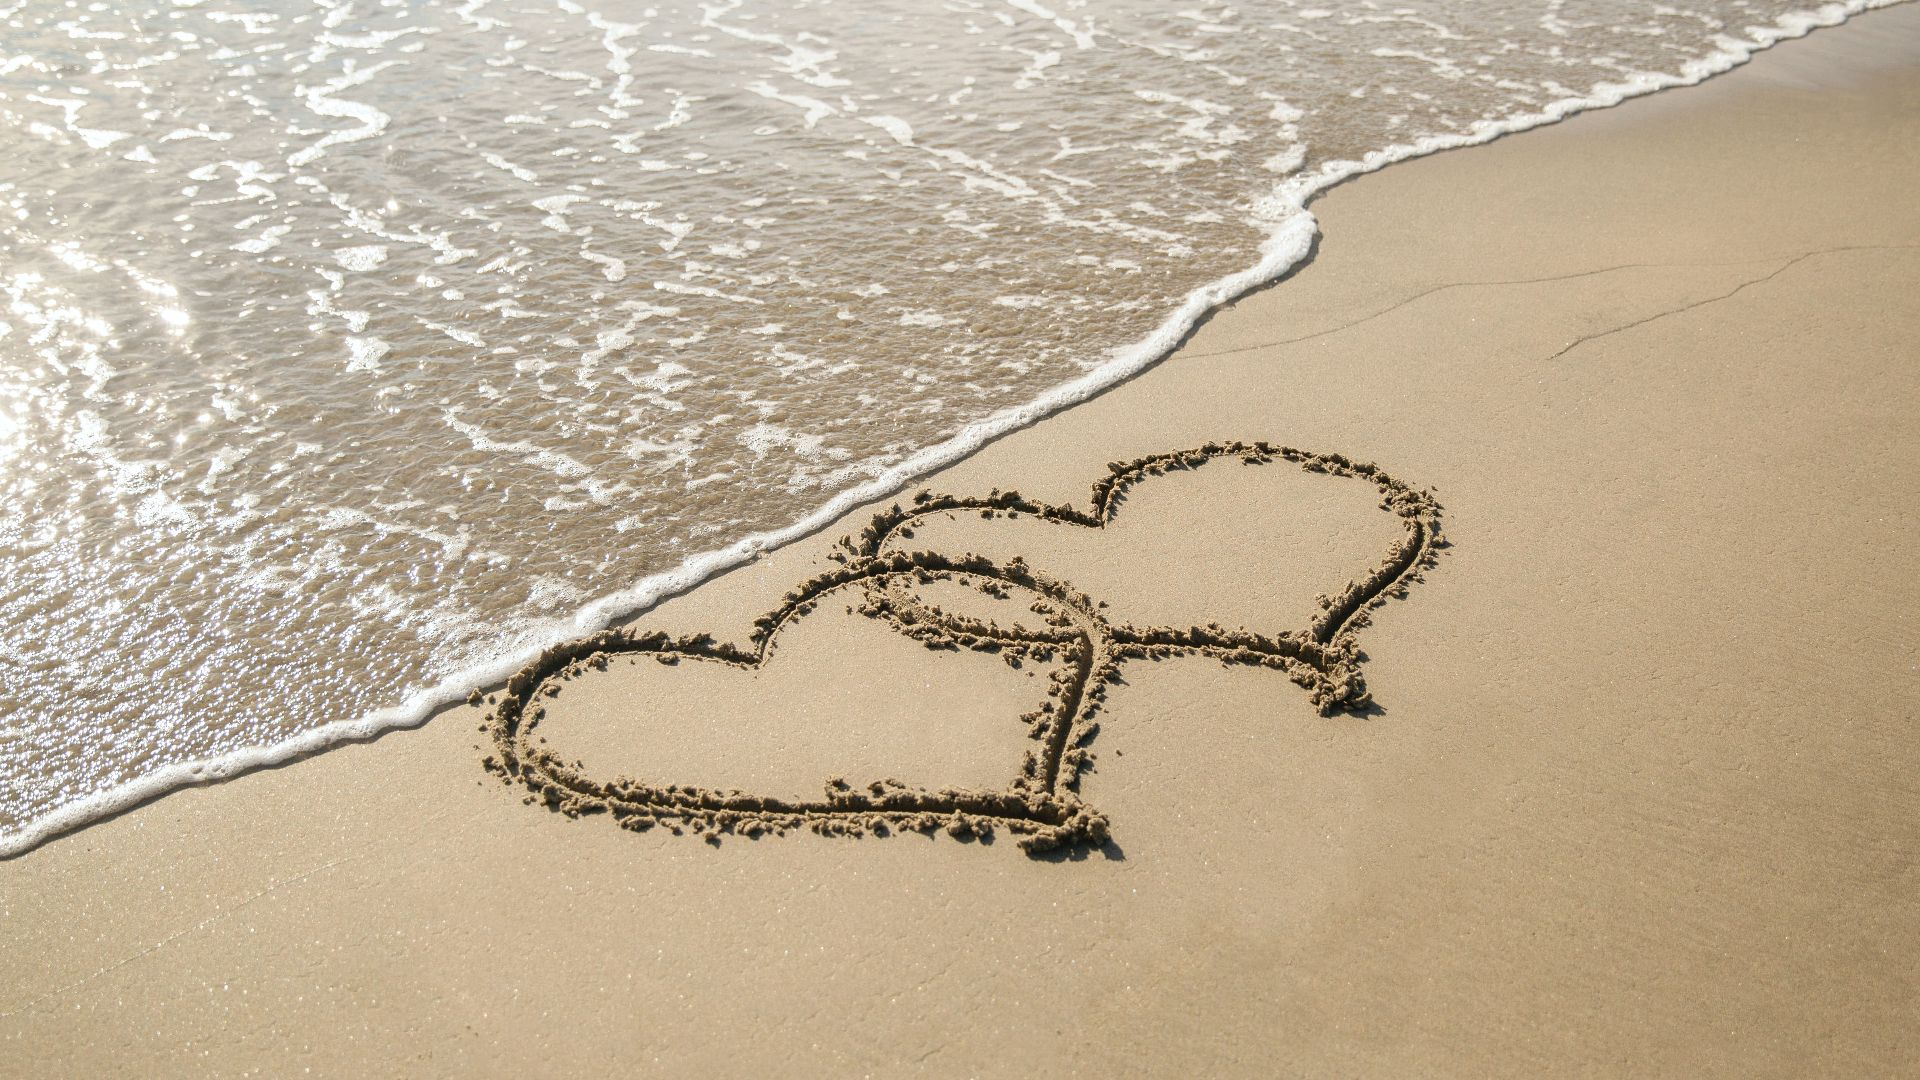 beach with two overlapping hearts drawn in the sand